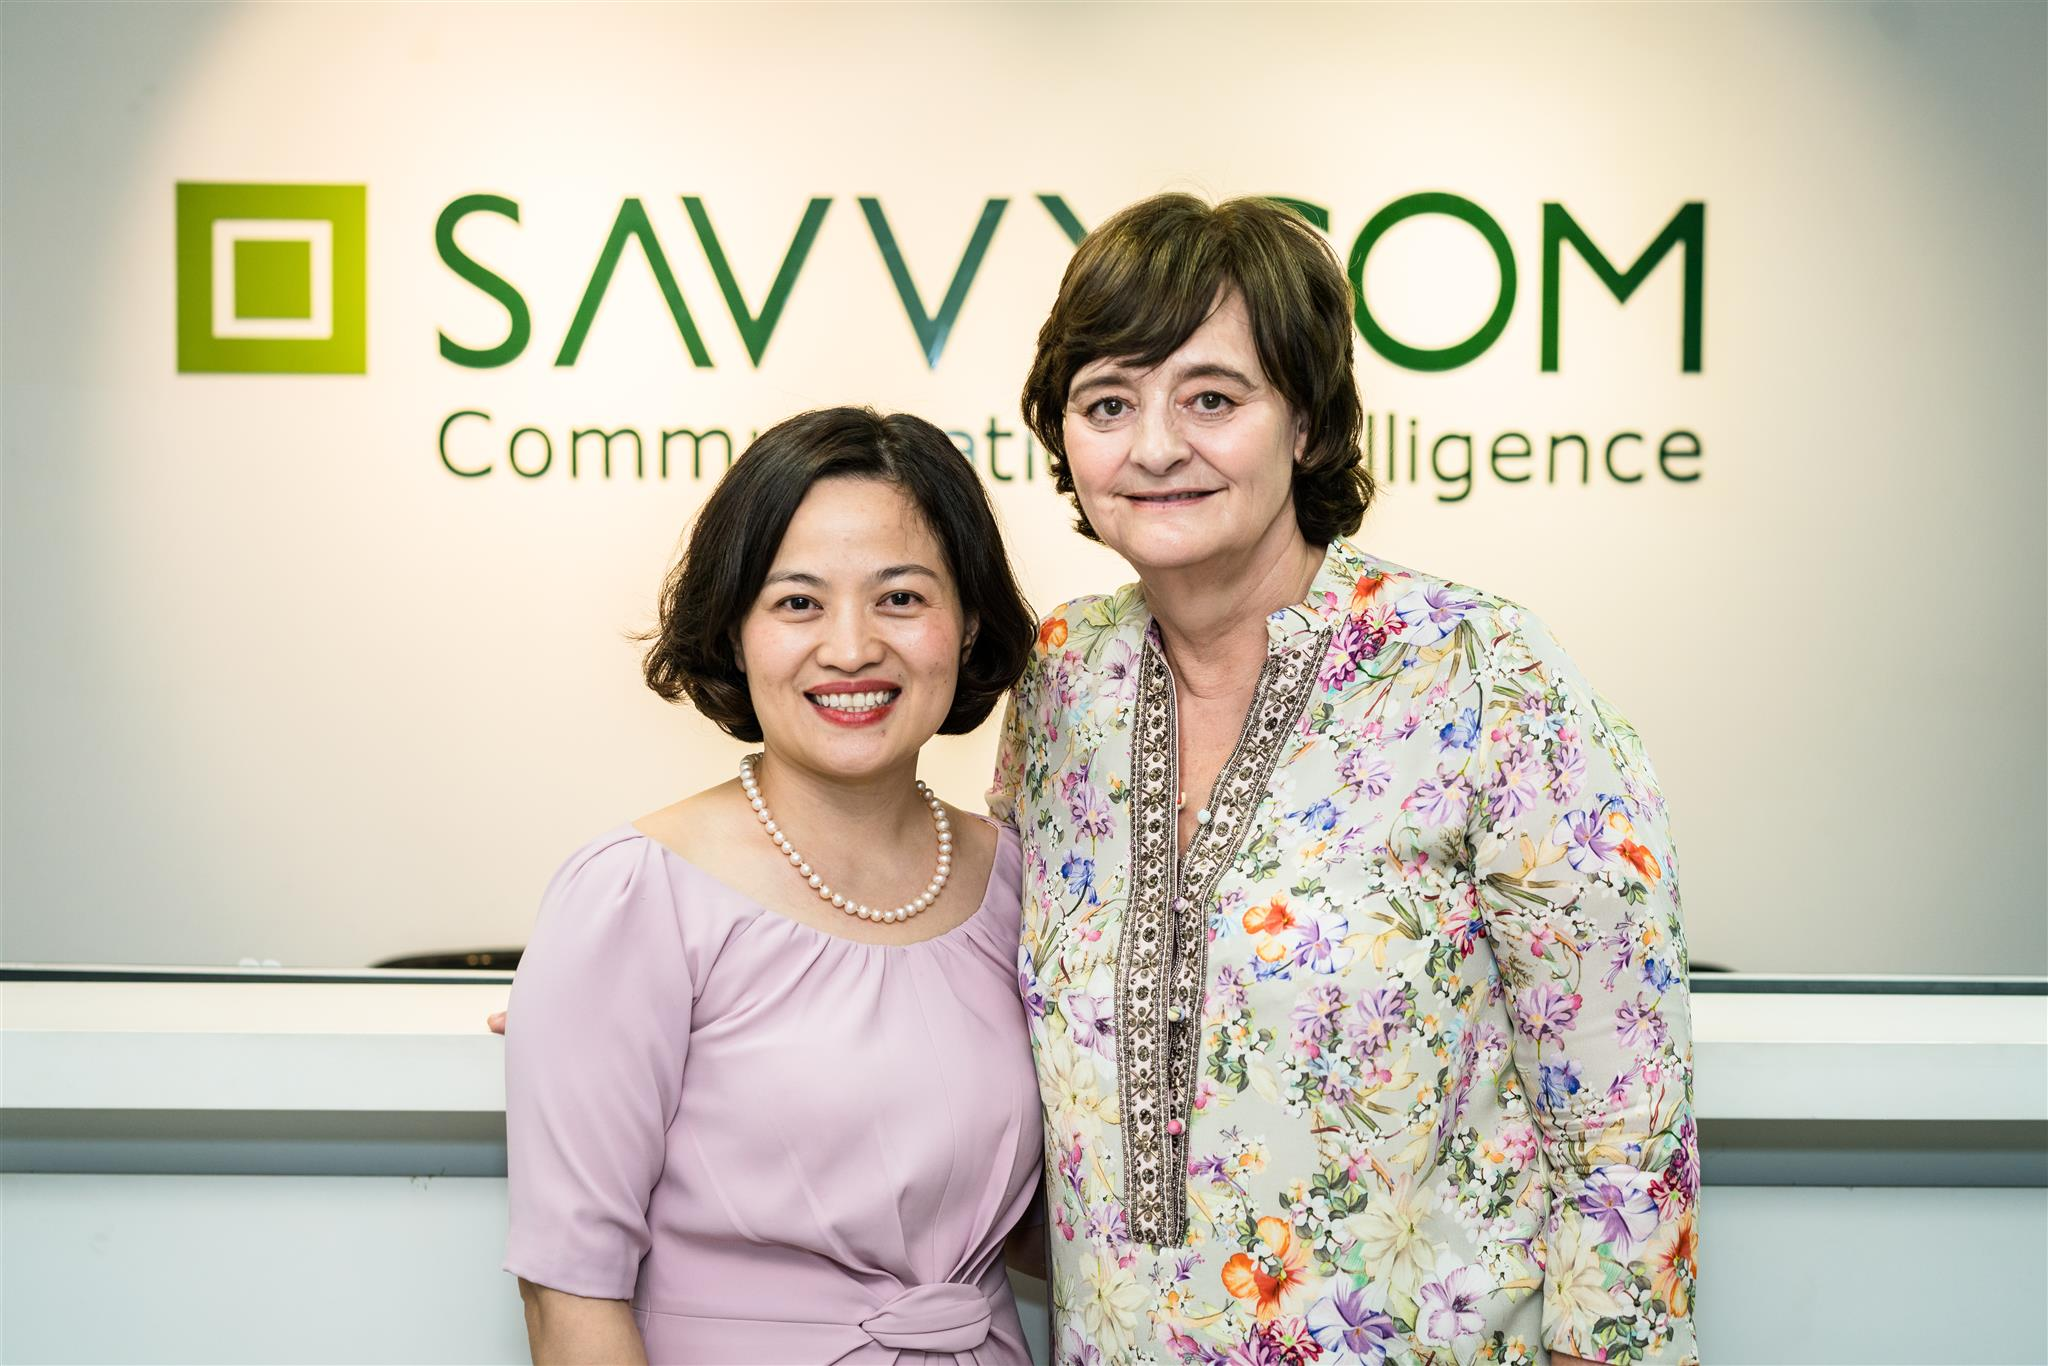 Welcoming Cherie Blair Foundation for Women to Savvycom